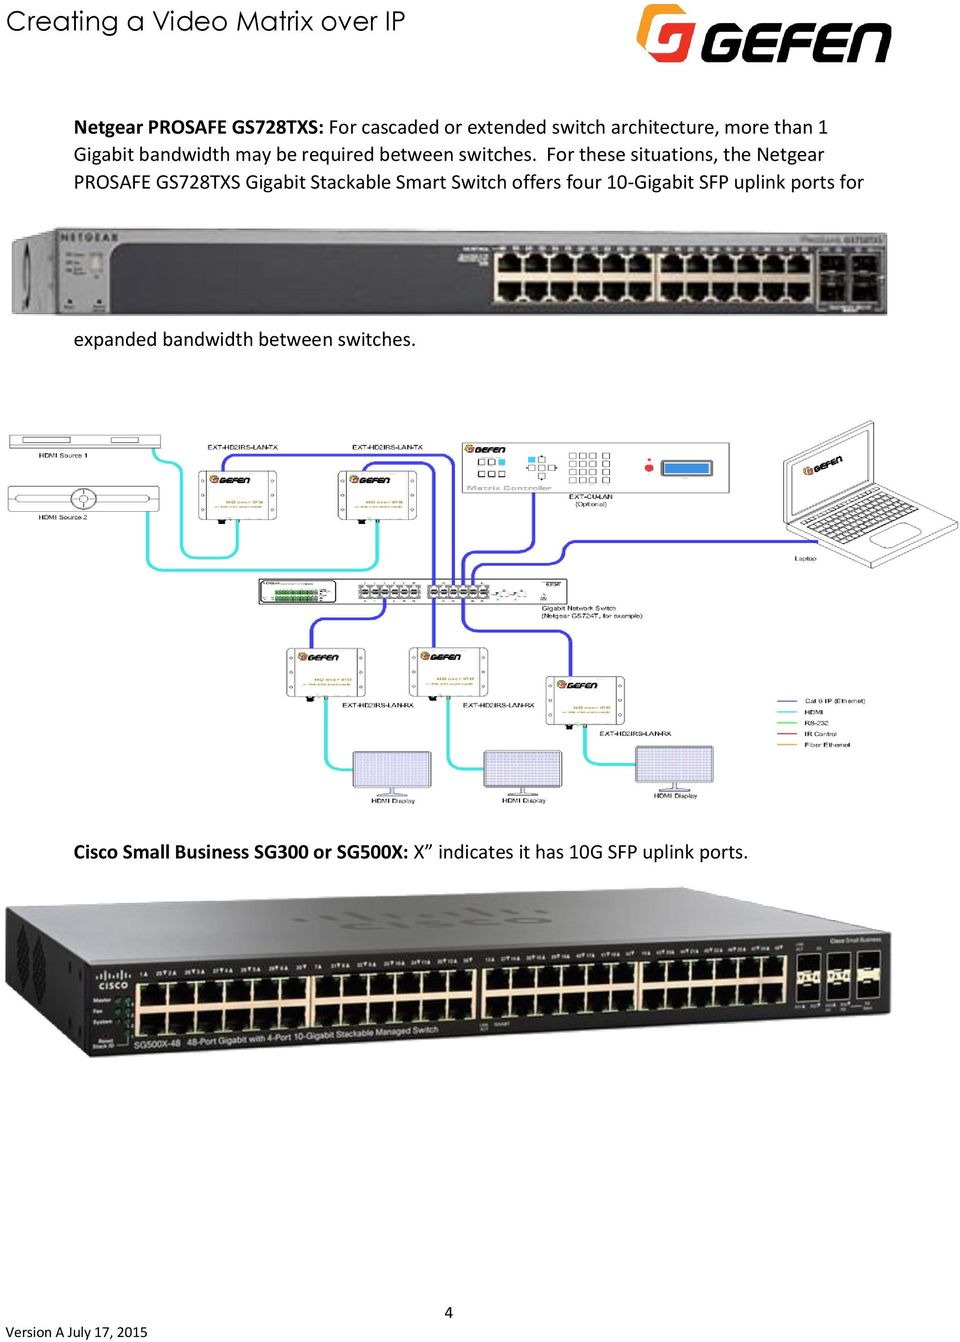 For these situations, the Netgear PROSAFE GS728TXS Gigabit Stackable Smart Switch offers four